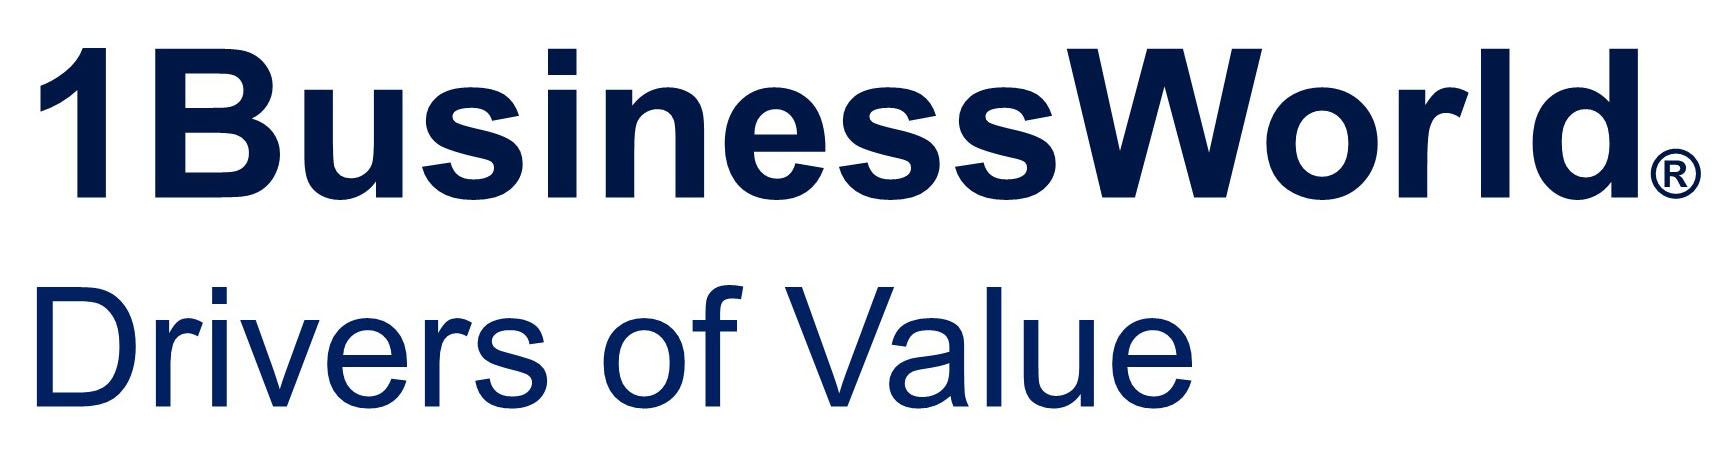 1BusinessWorld Drivers of Value